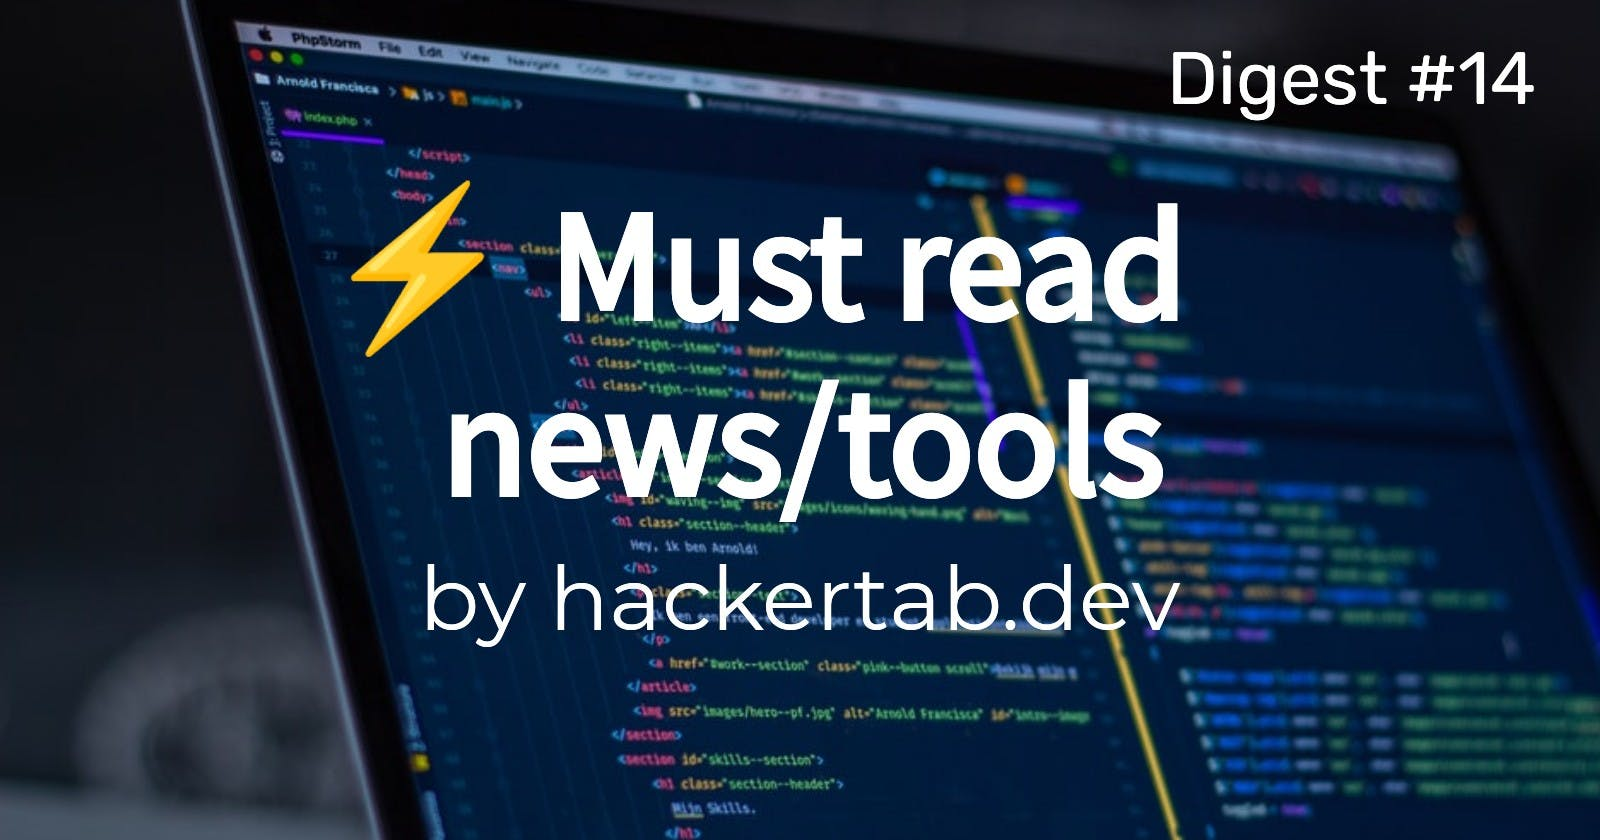 ⚡ Must read Tech news/tools of the day - Digest #14